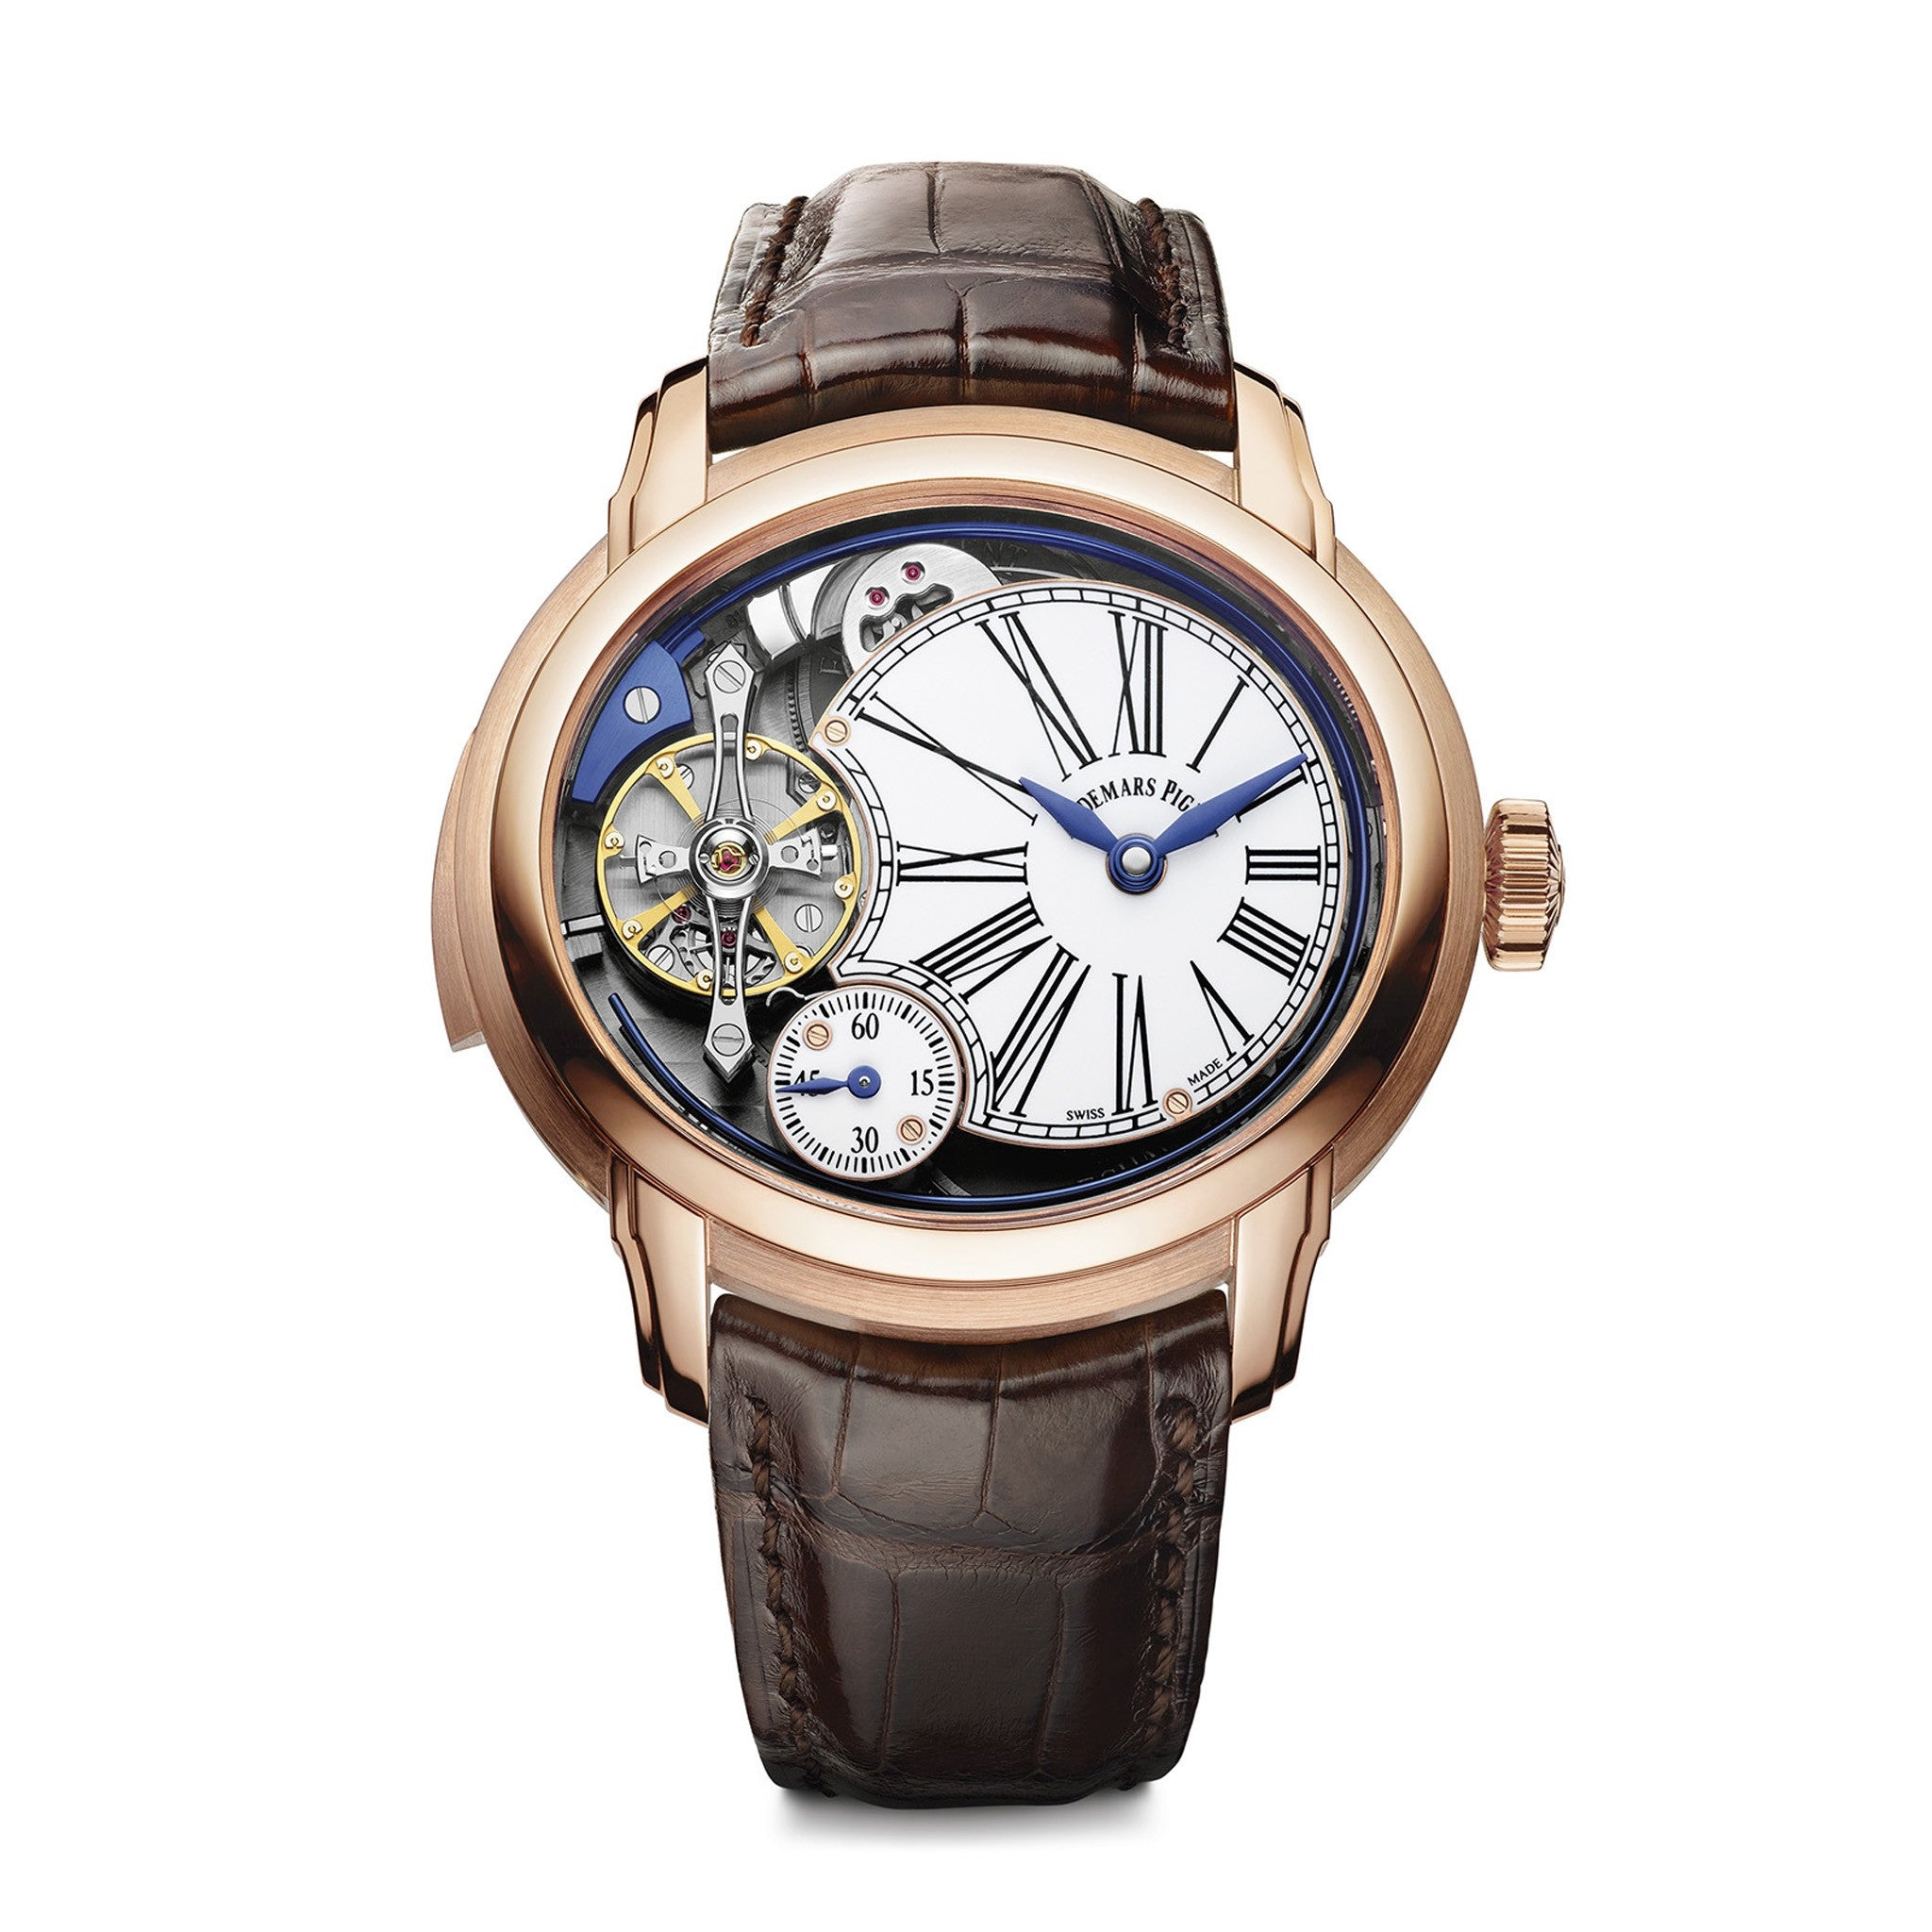 Millenary Minute Repeater with AP Escapement 26371OR.OO.D803CR.01 - Audemars Piguet